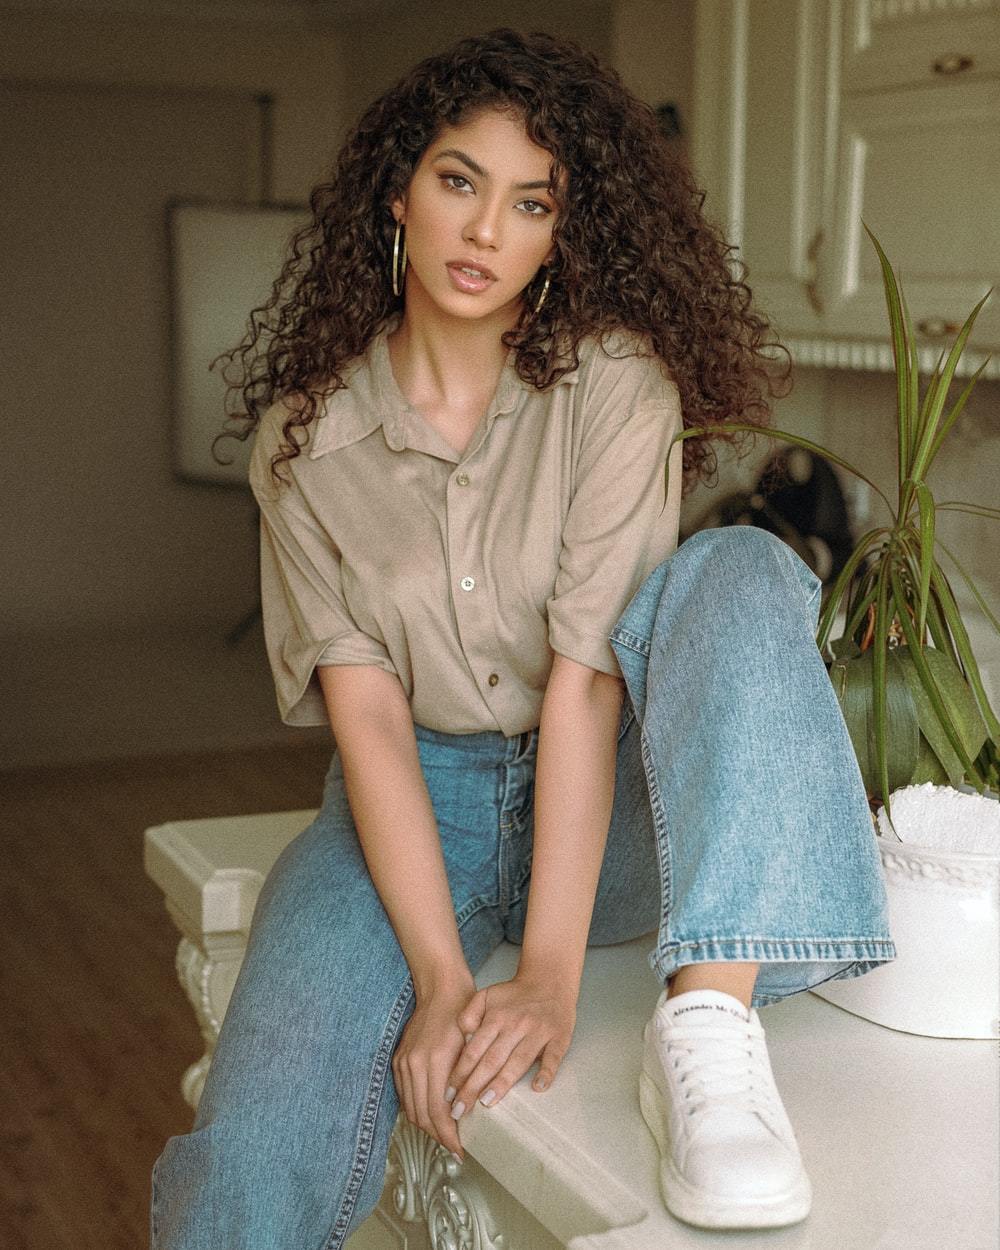 woman in brown button up shirt and blue denim jeans sitting on white couch